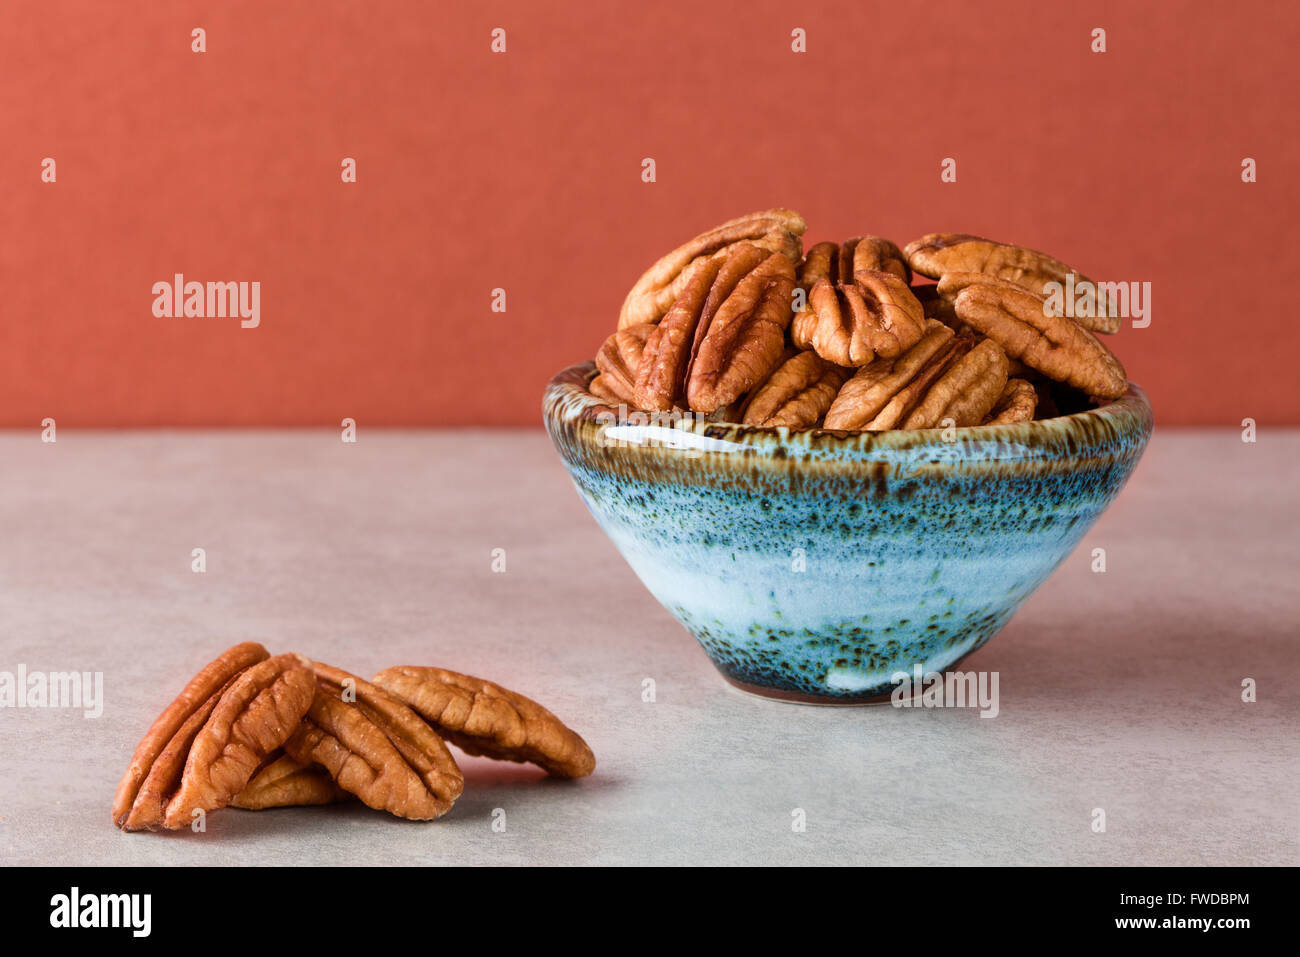 Pecans on marble surface and in ceramic bowl with brown background. Copy space, shallow depth of field - Stock Image